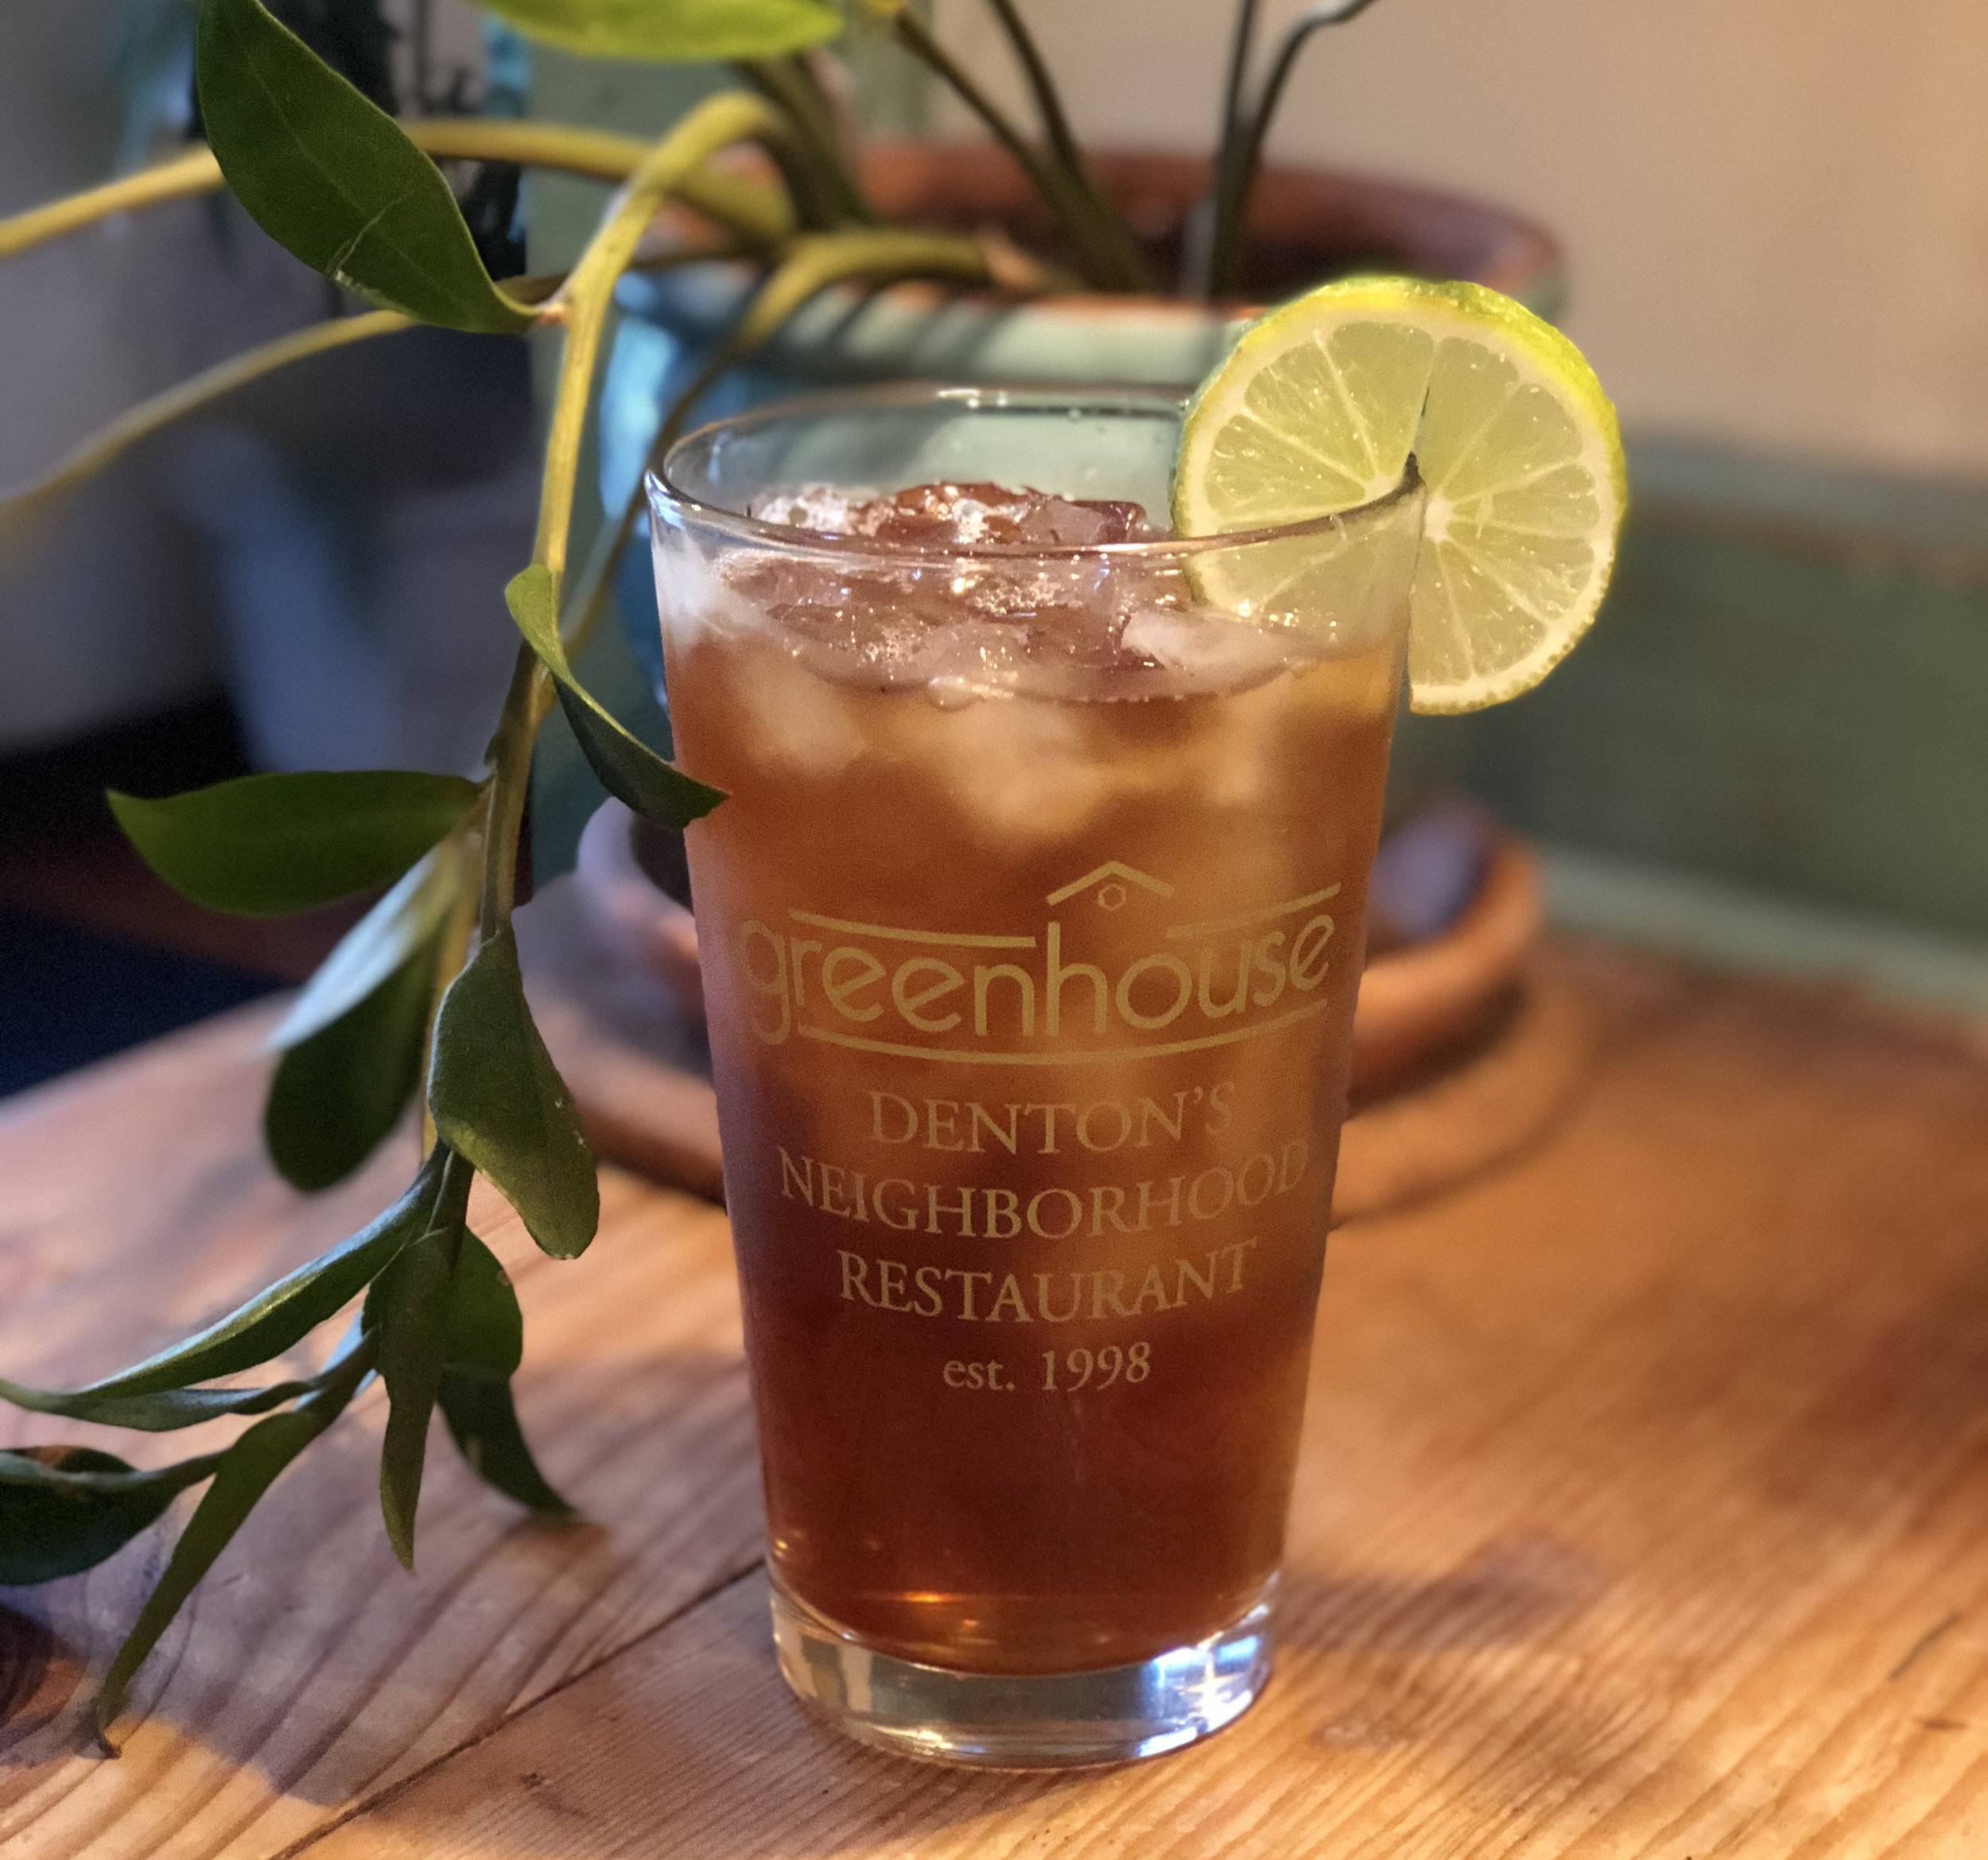 Mention Holiday Open House at Greenhouse Restaurant and receive a complimentary pint glass; while supplies last.